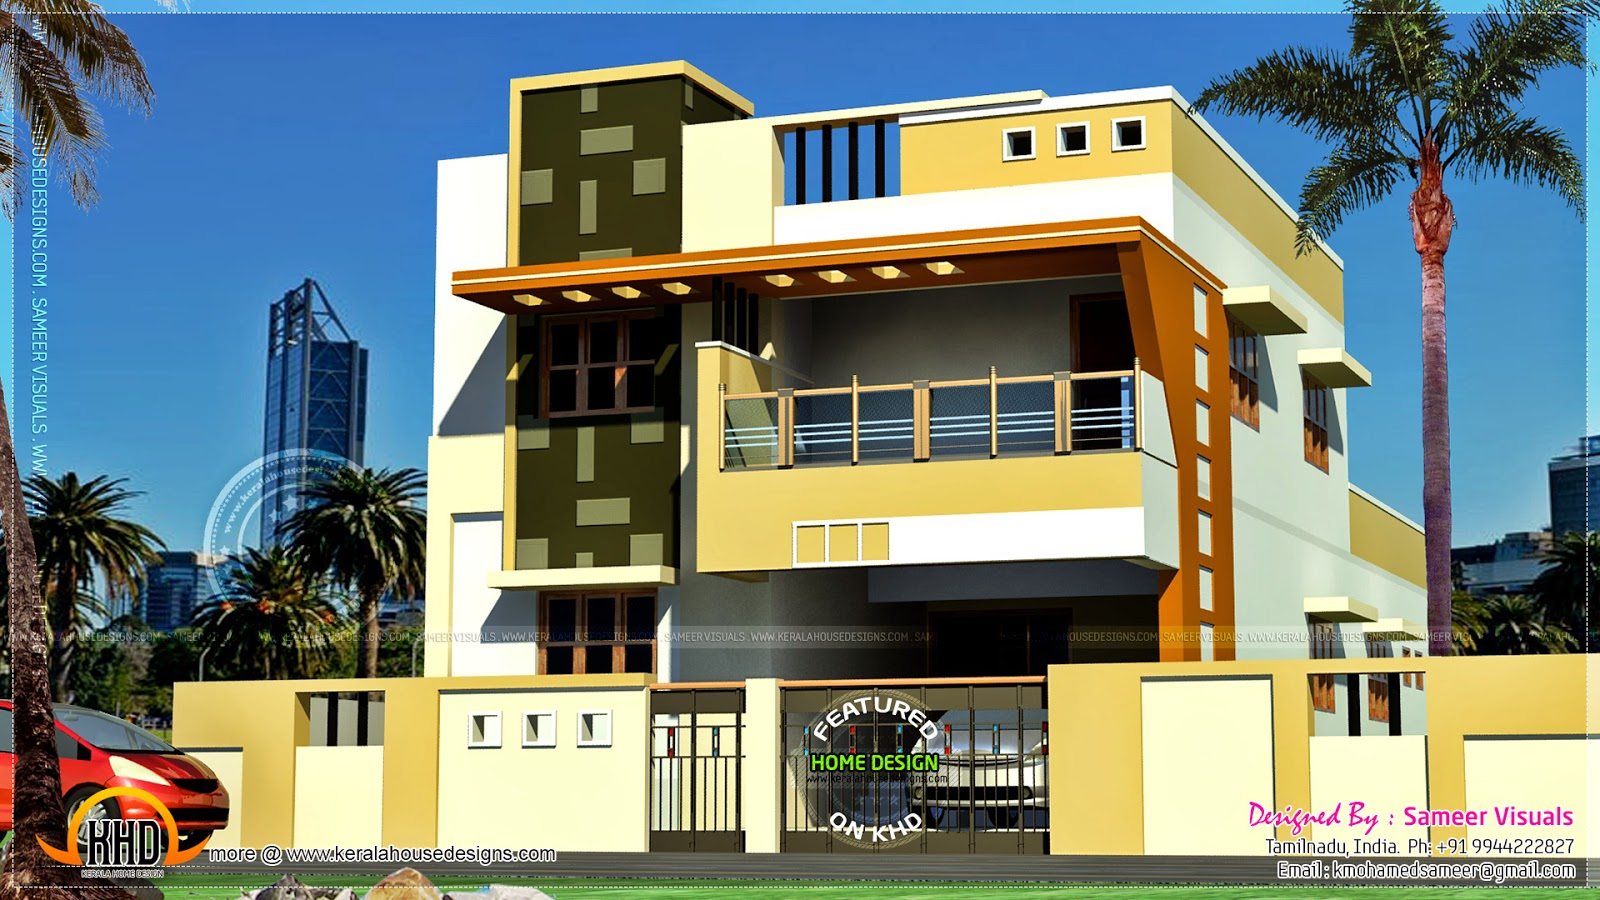 Modern south indian house design kerala home design and for Indian house designs and floor plans